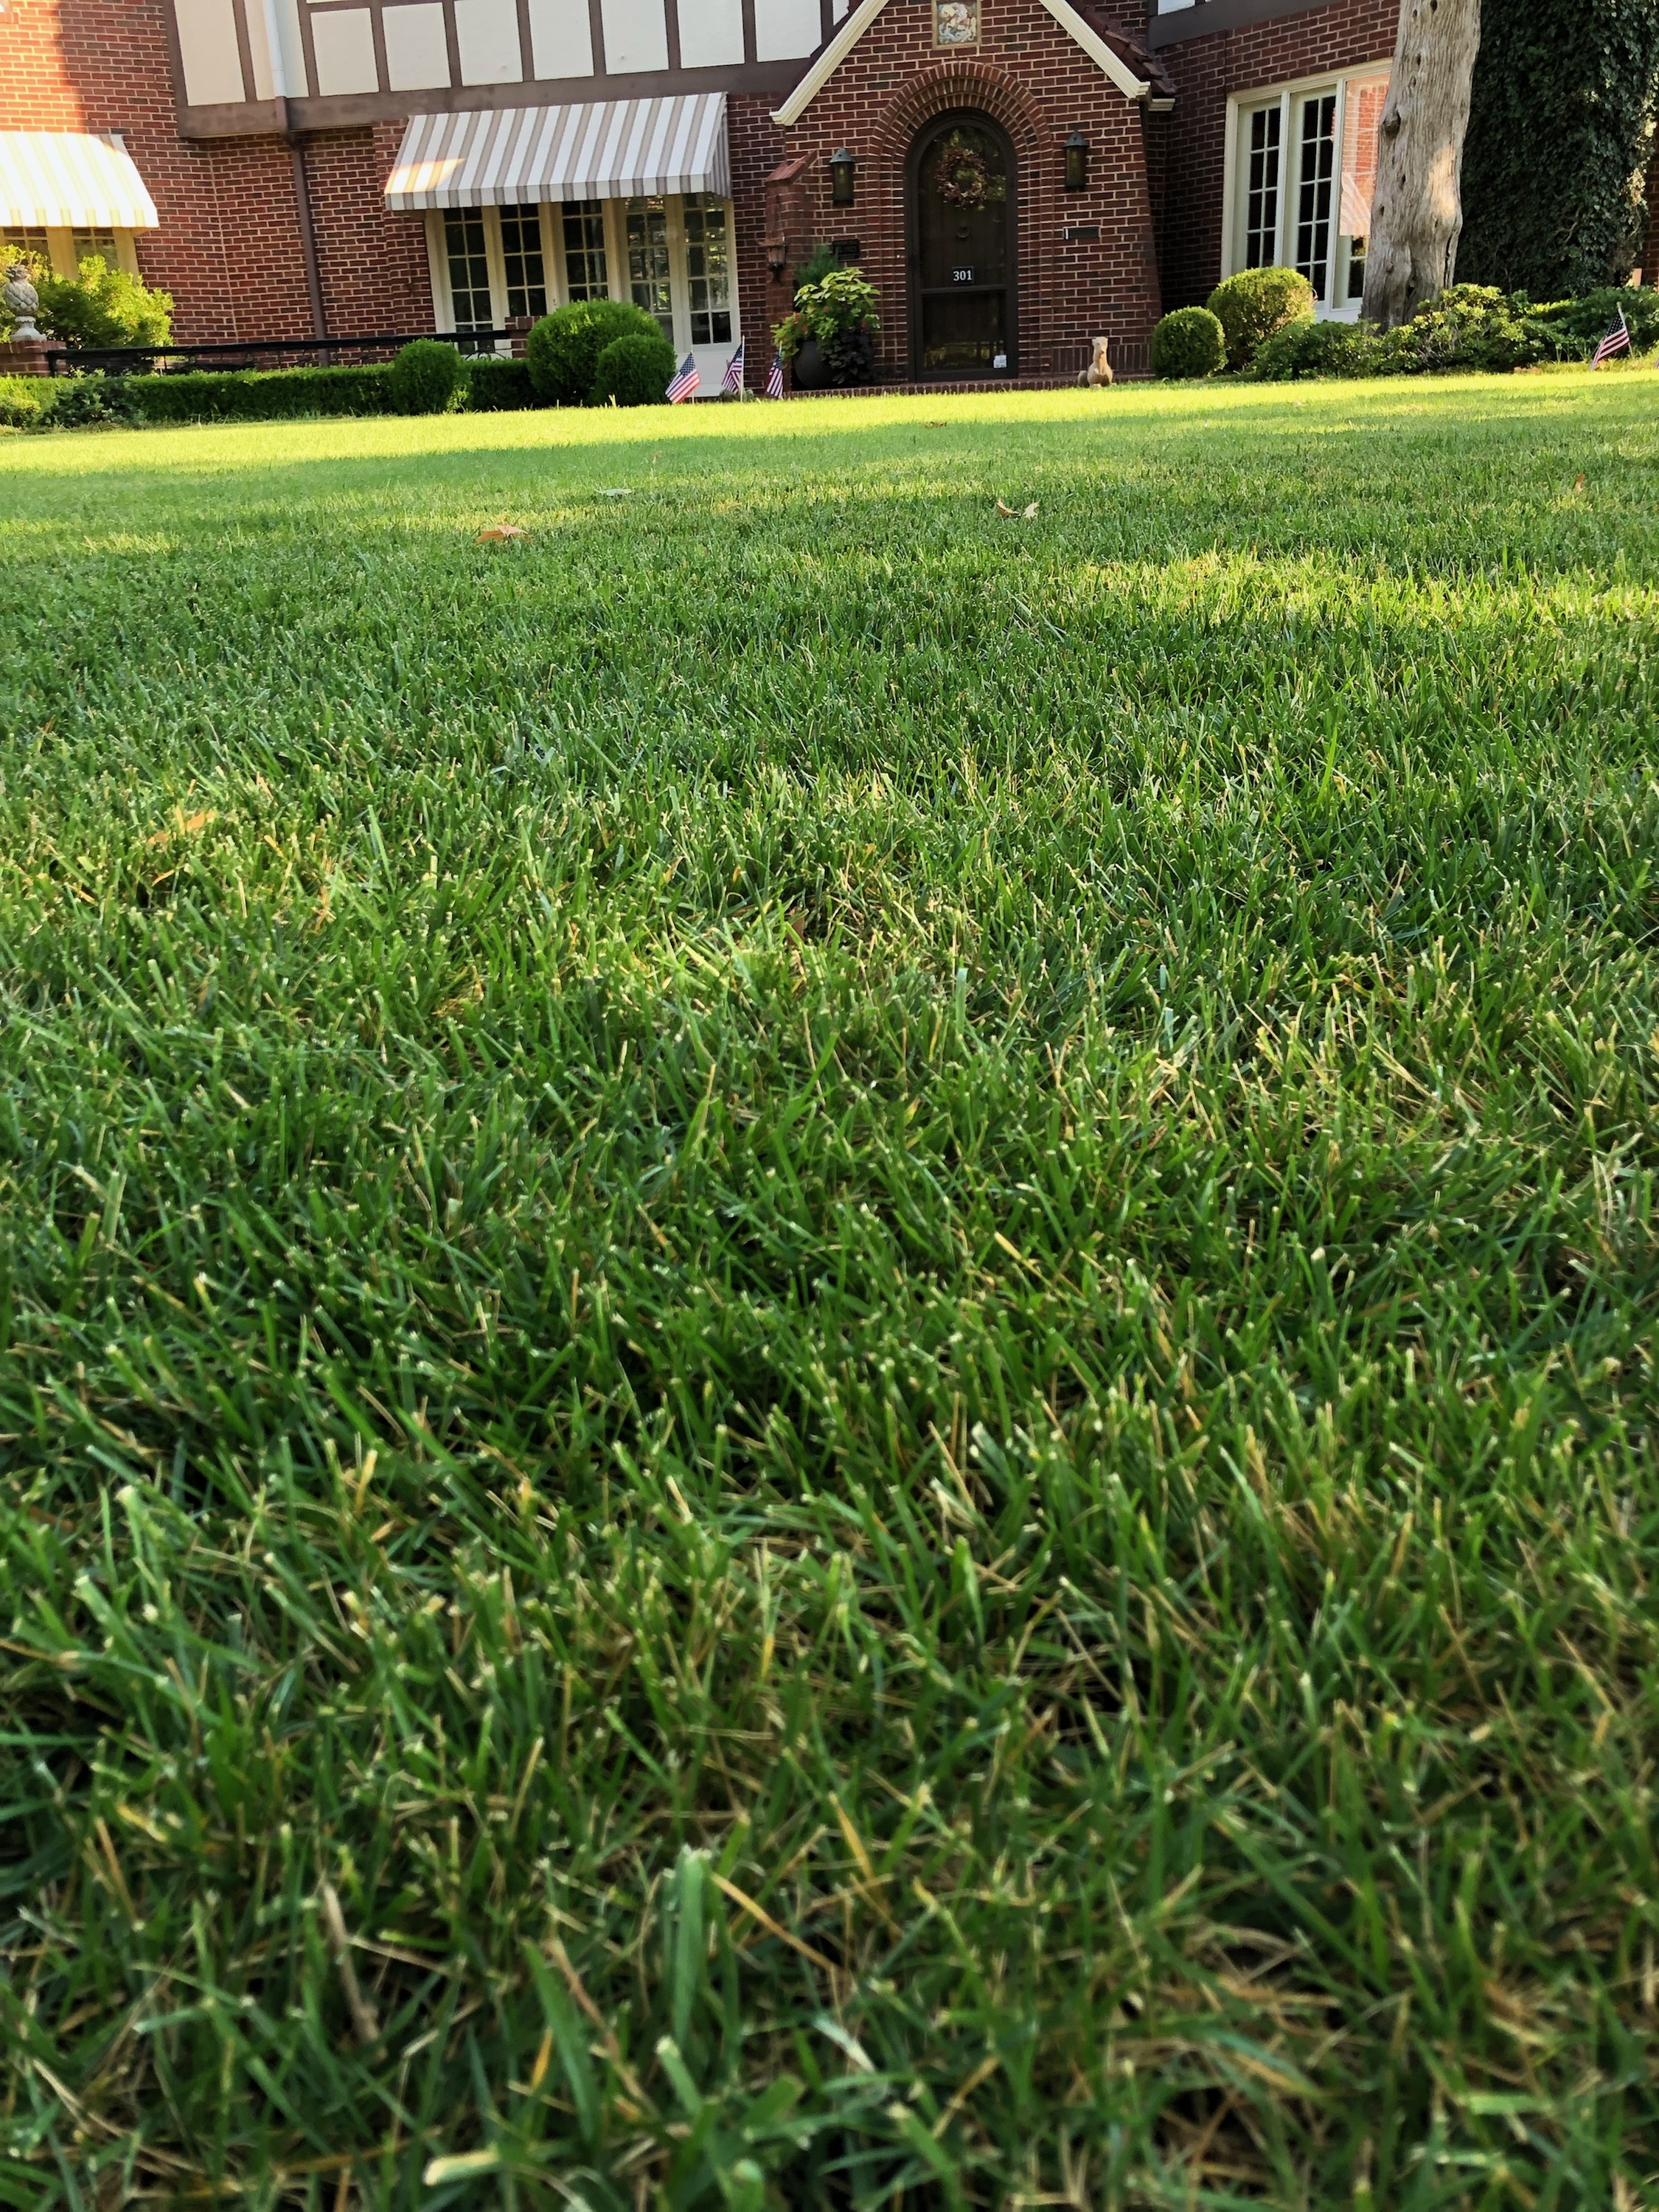 Fescue lawn with dappled sunshine.